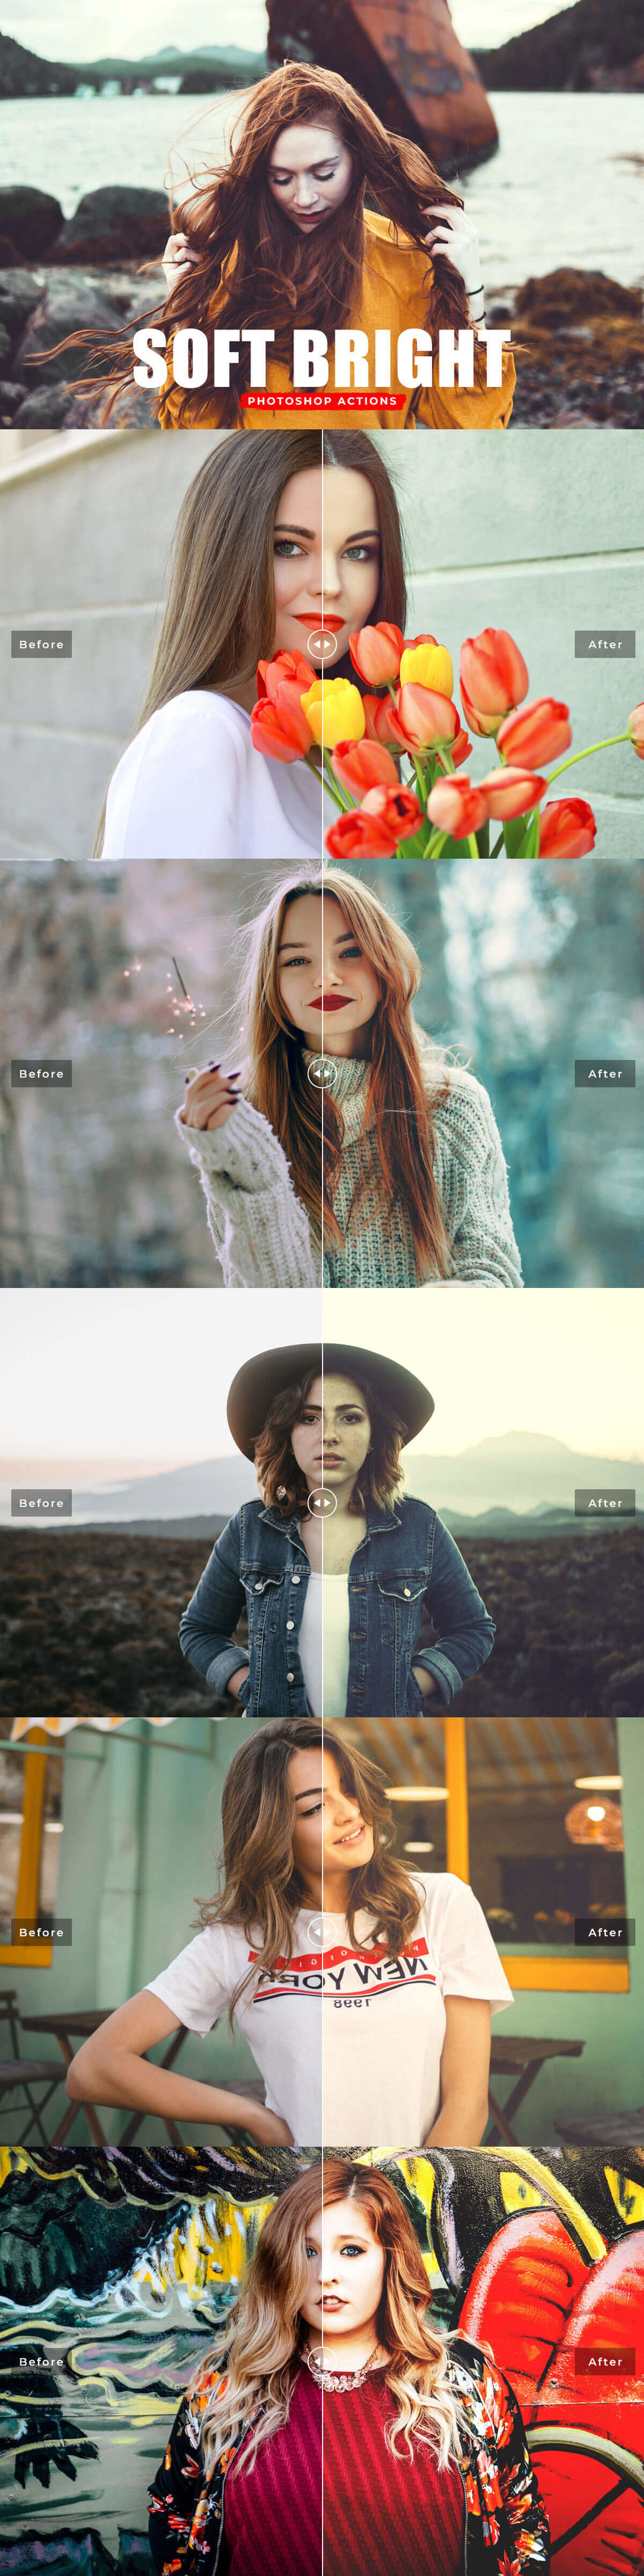 Free #Soft Bright #Photoshop #Actions will brighten up your photography and give it that dreamy soft bright effect look in your photographs.